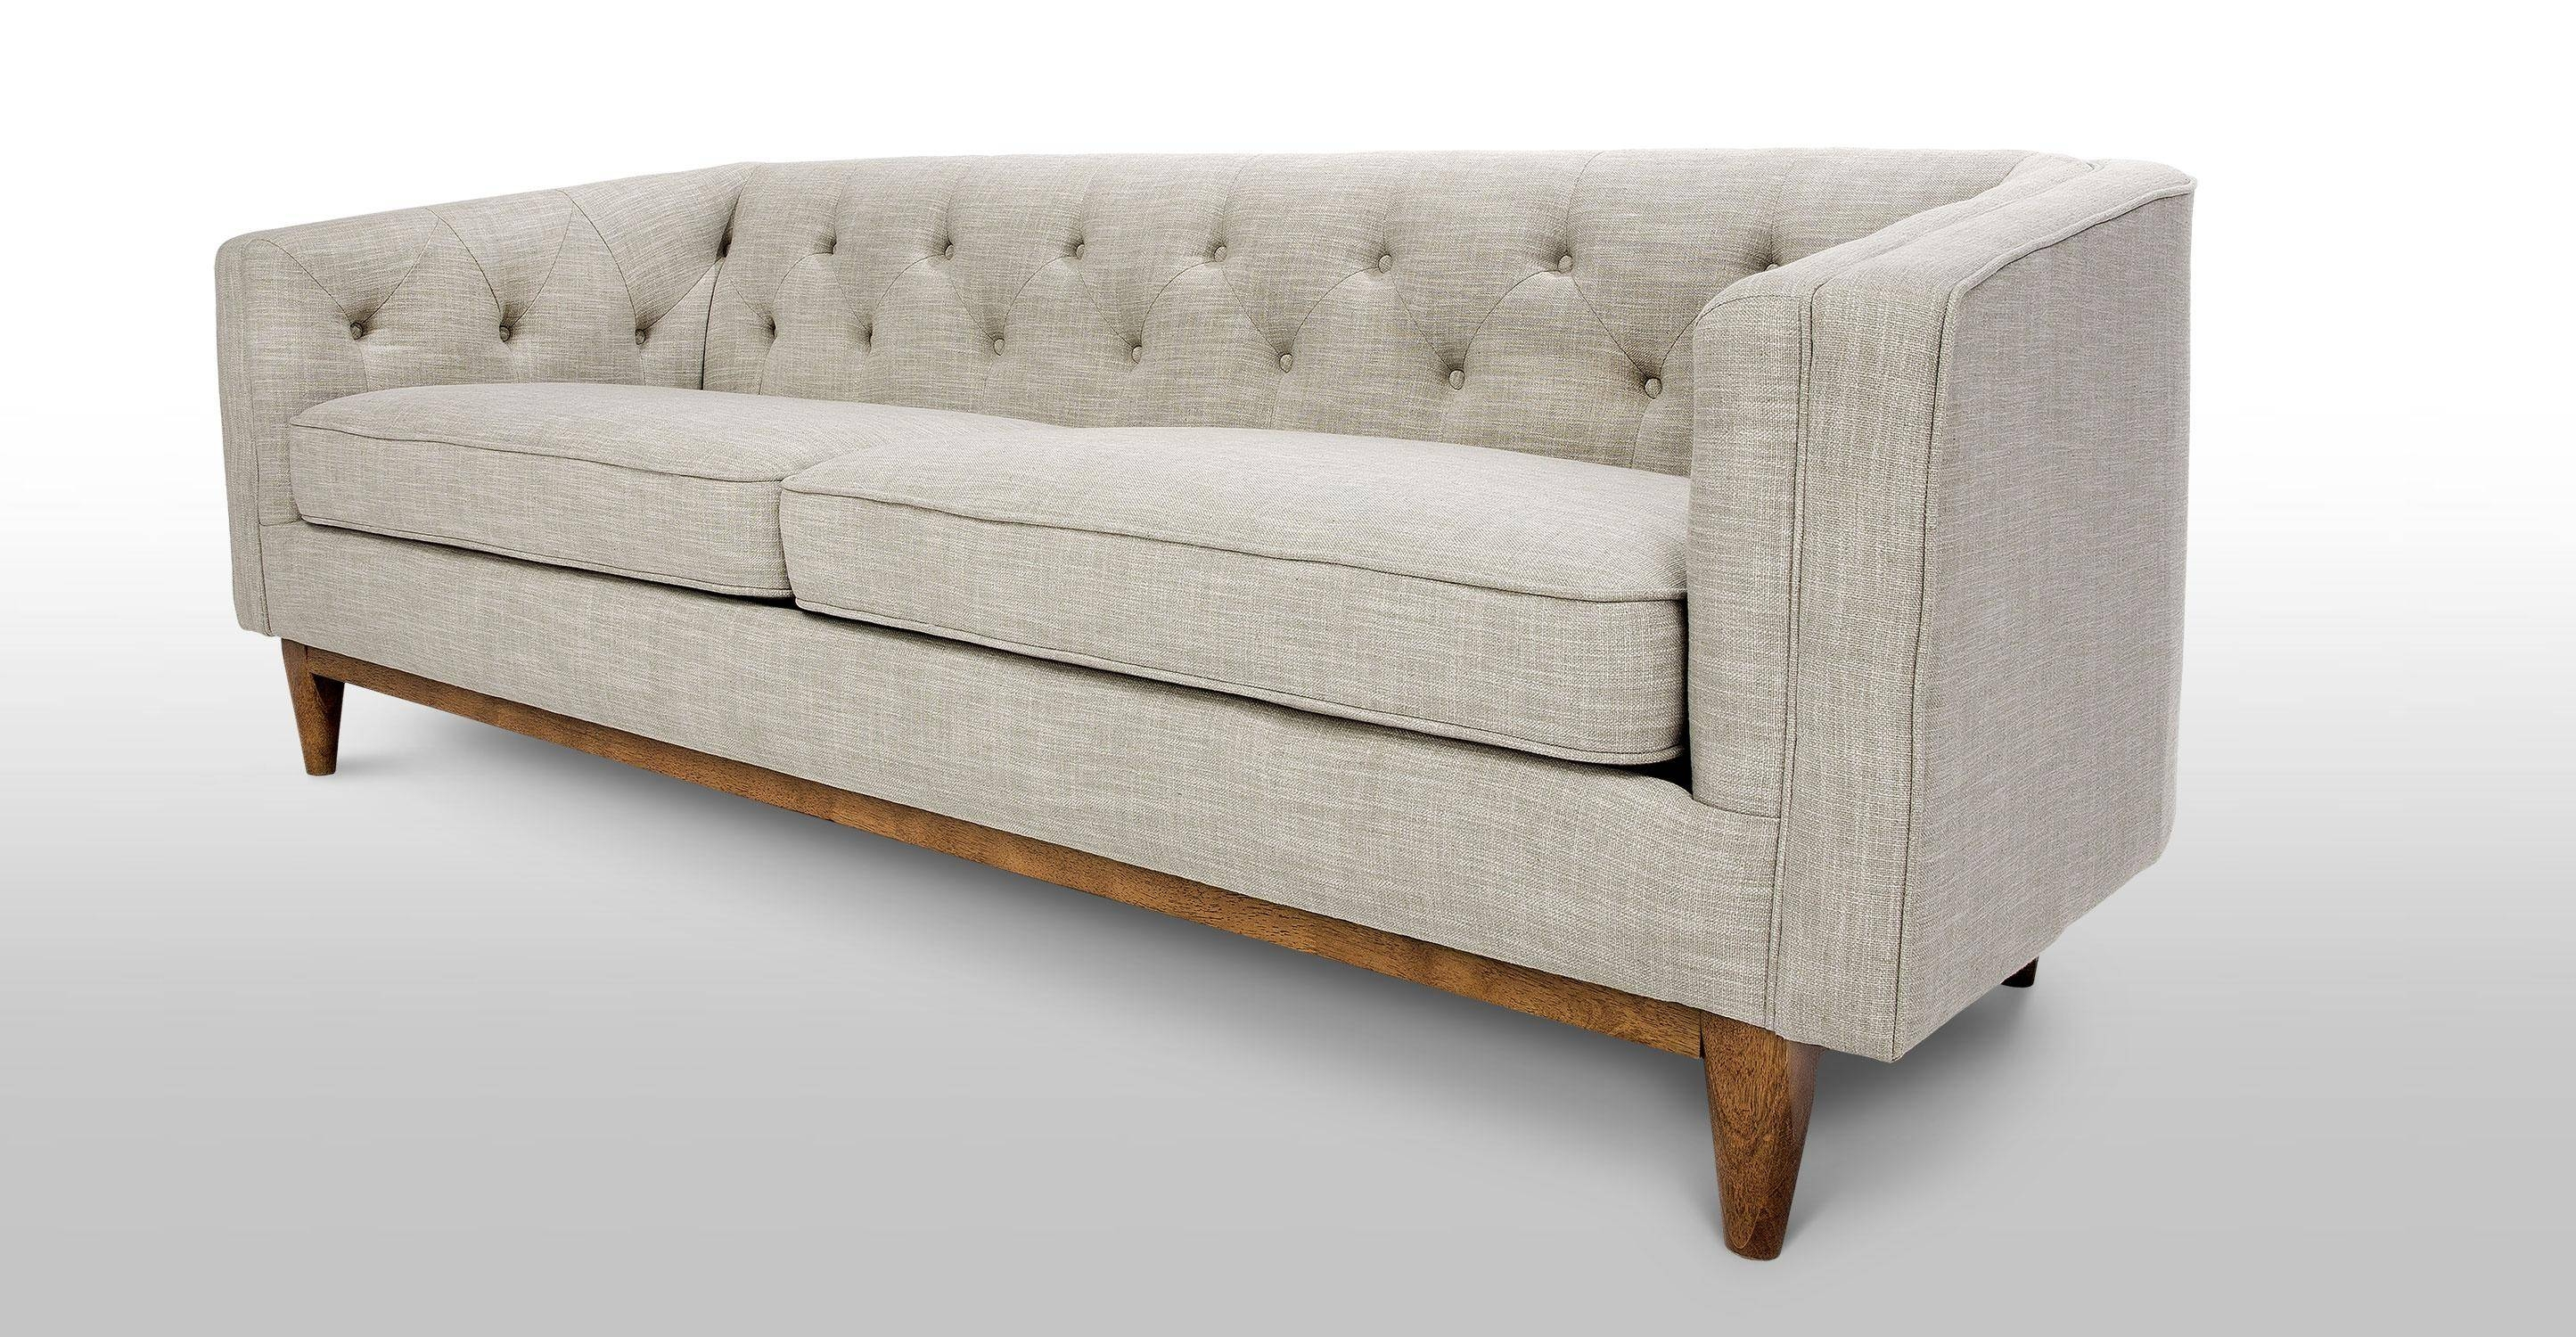 20 Best Magnetic Floating Sofas | Sofa Ideas throughout Magnetic Floating Sofas (Image 4 of 15)